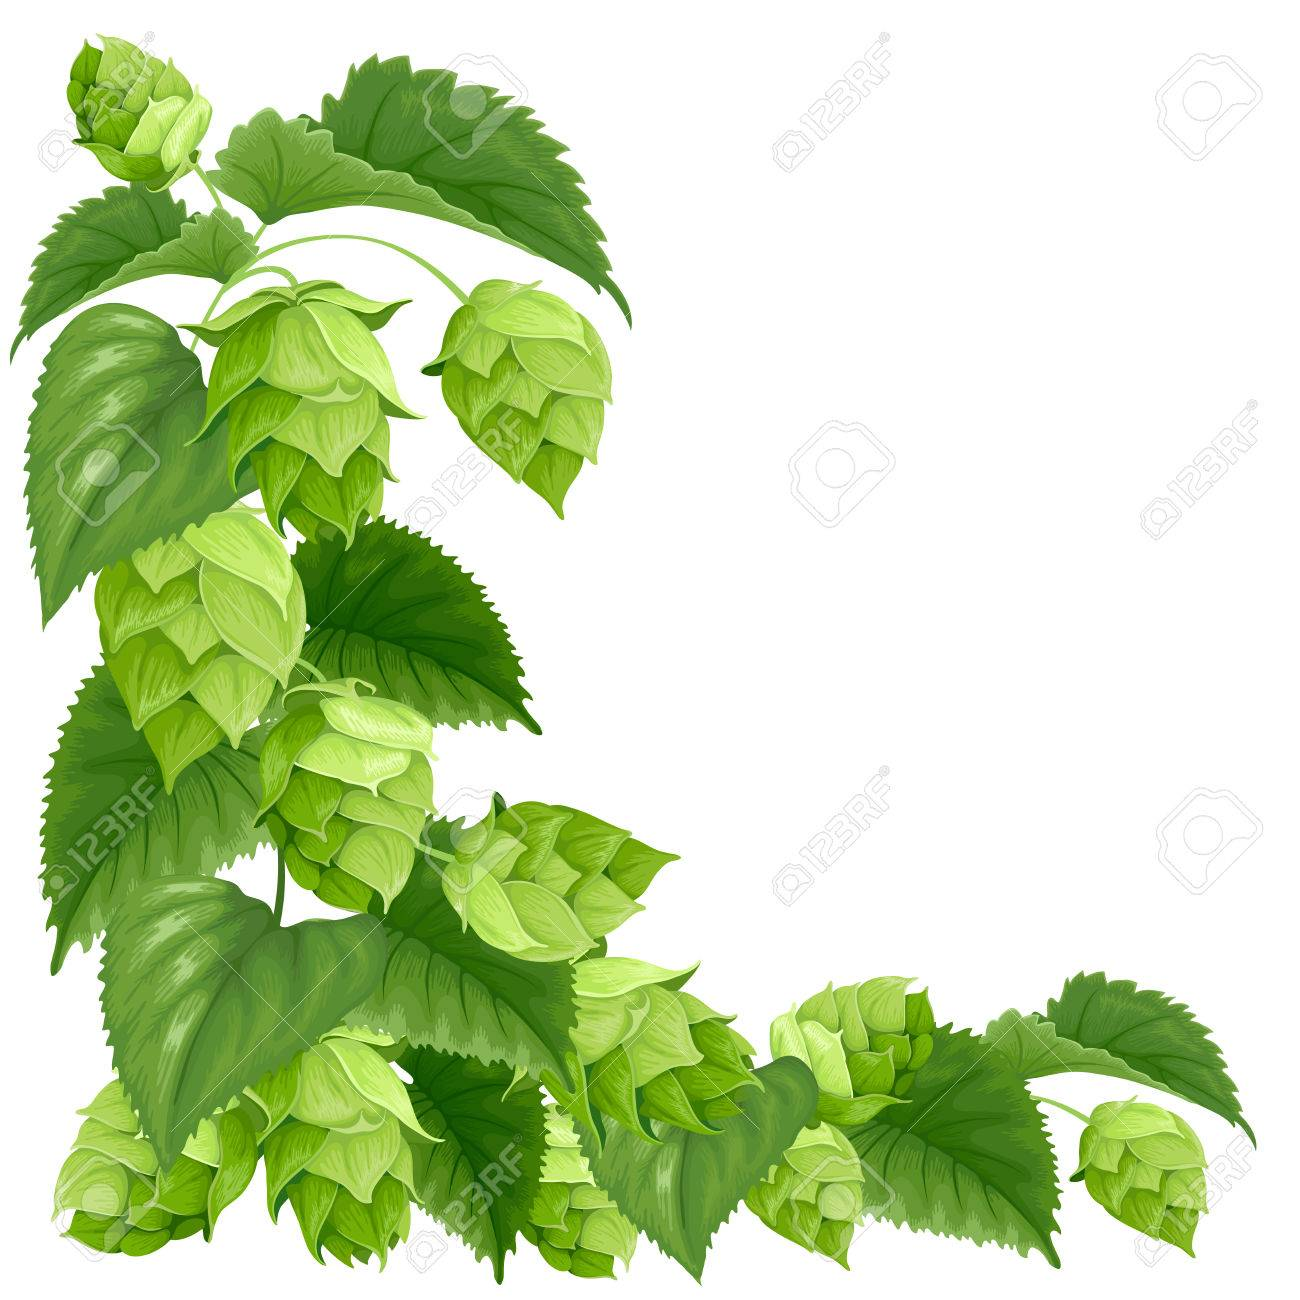 Branch of hops isolated on white background - 60915509